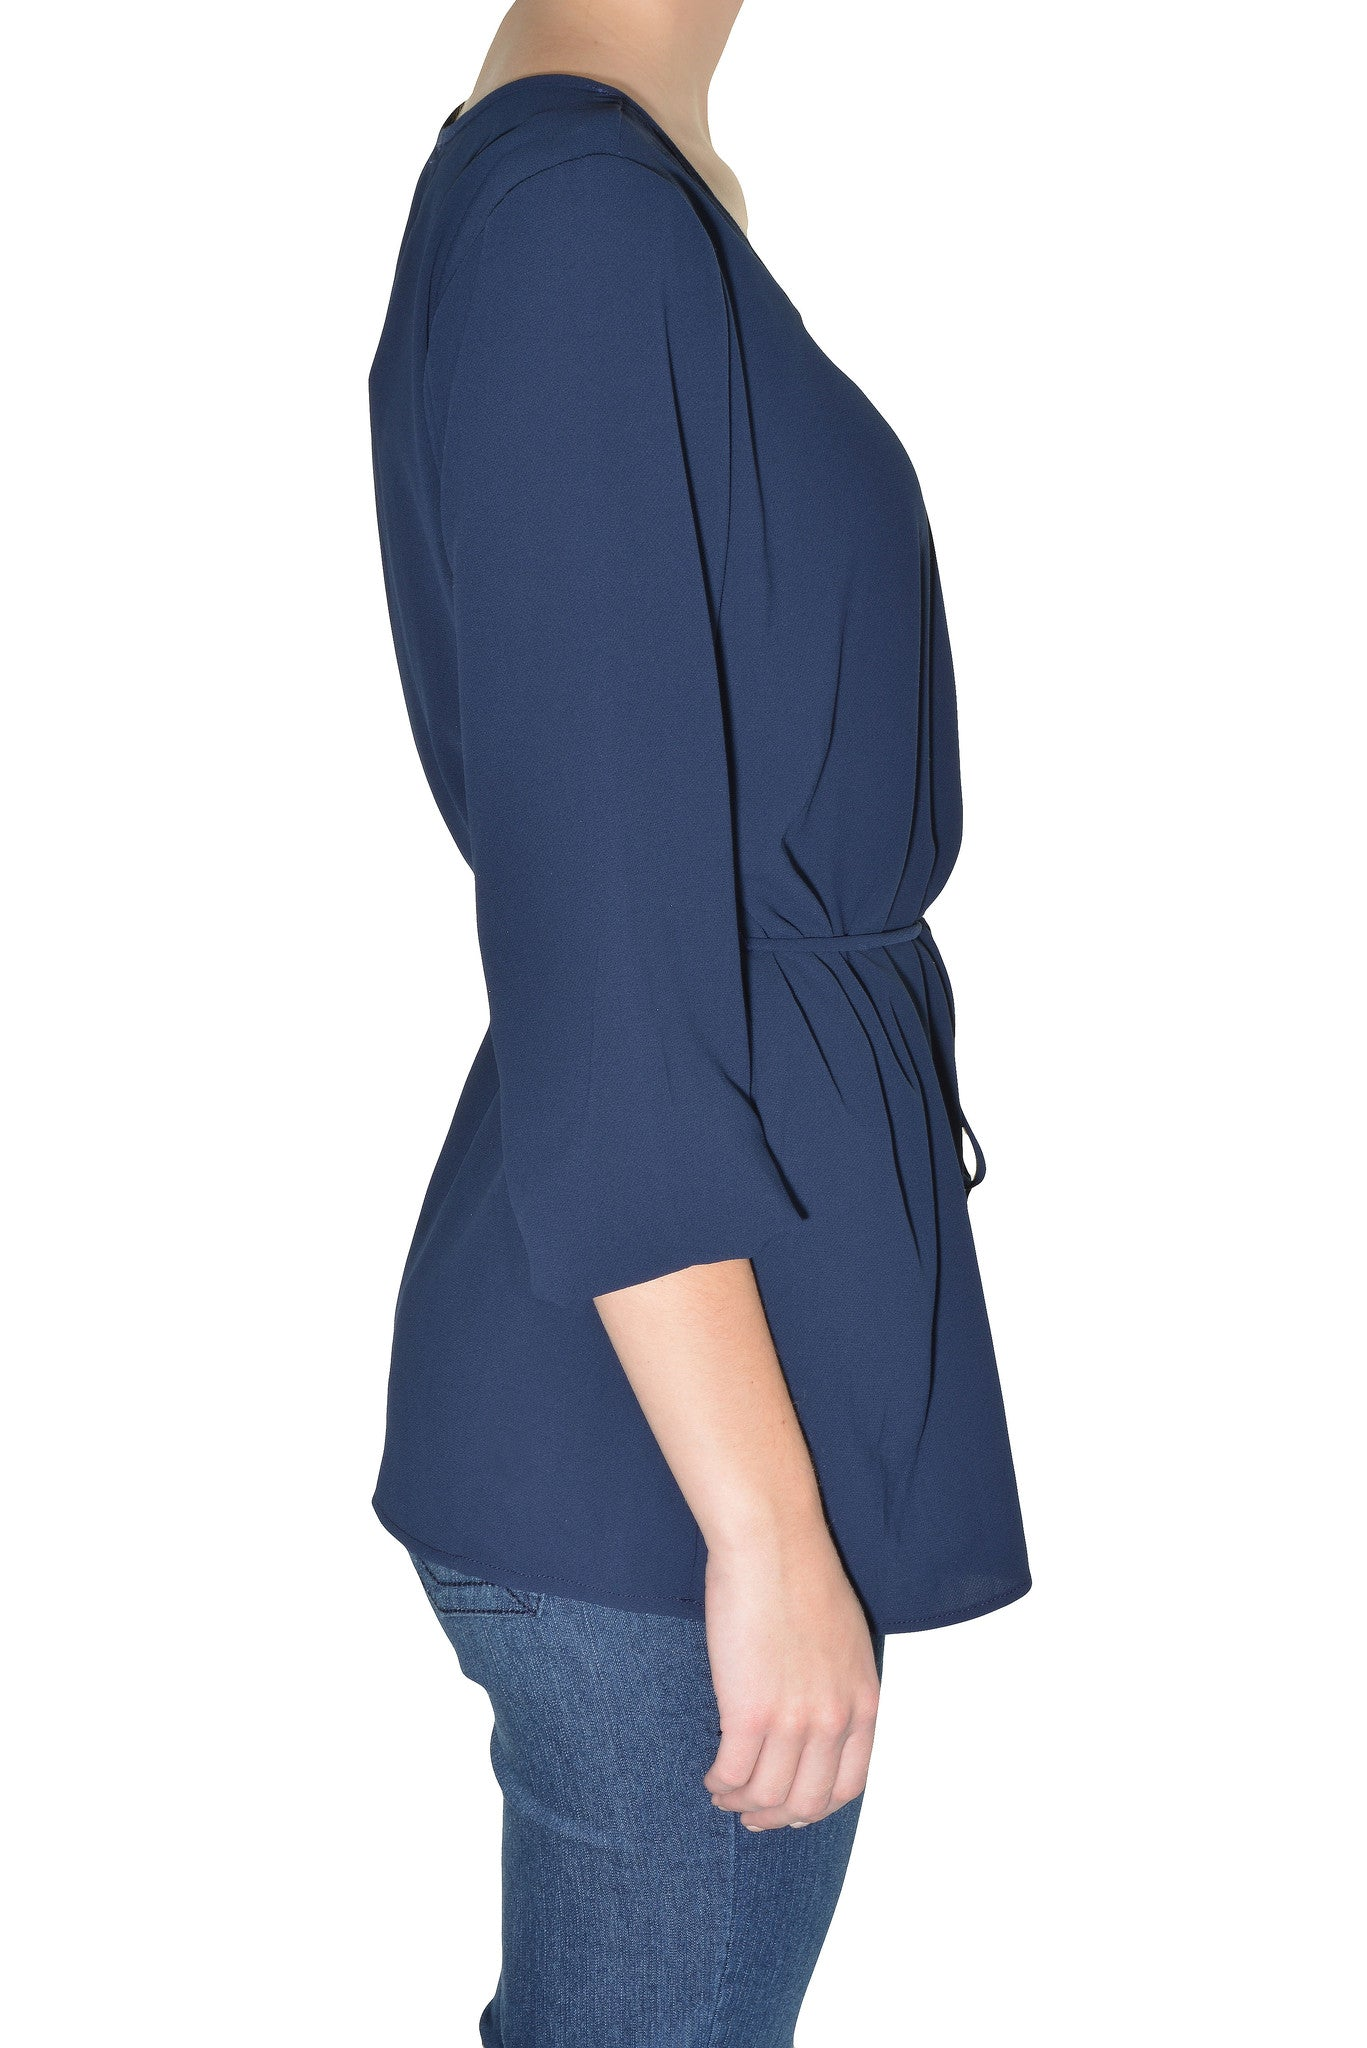 Carrie Allen Metal Accent Blouse (Navy Blue Gold)